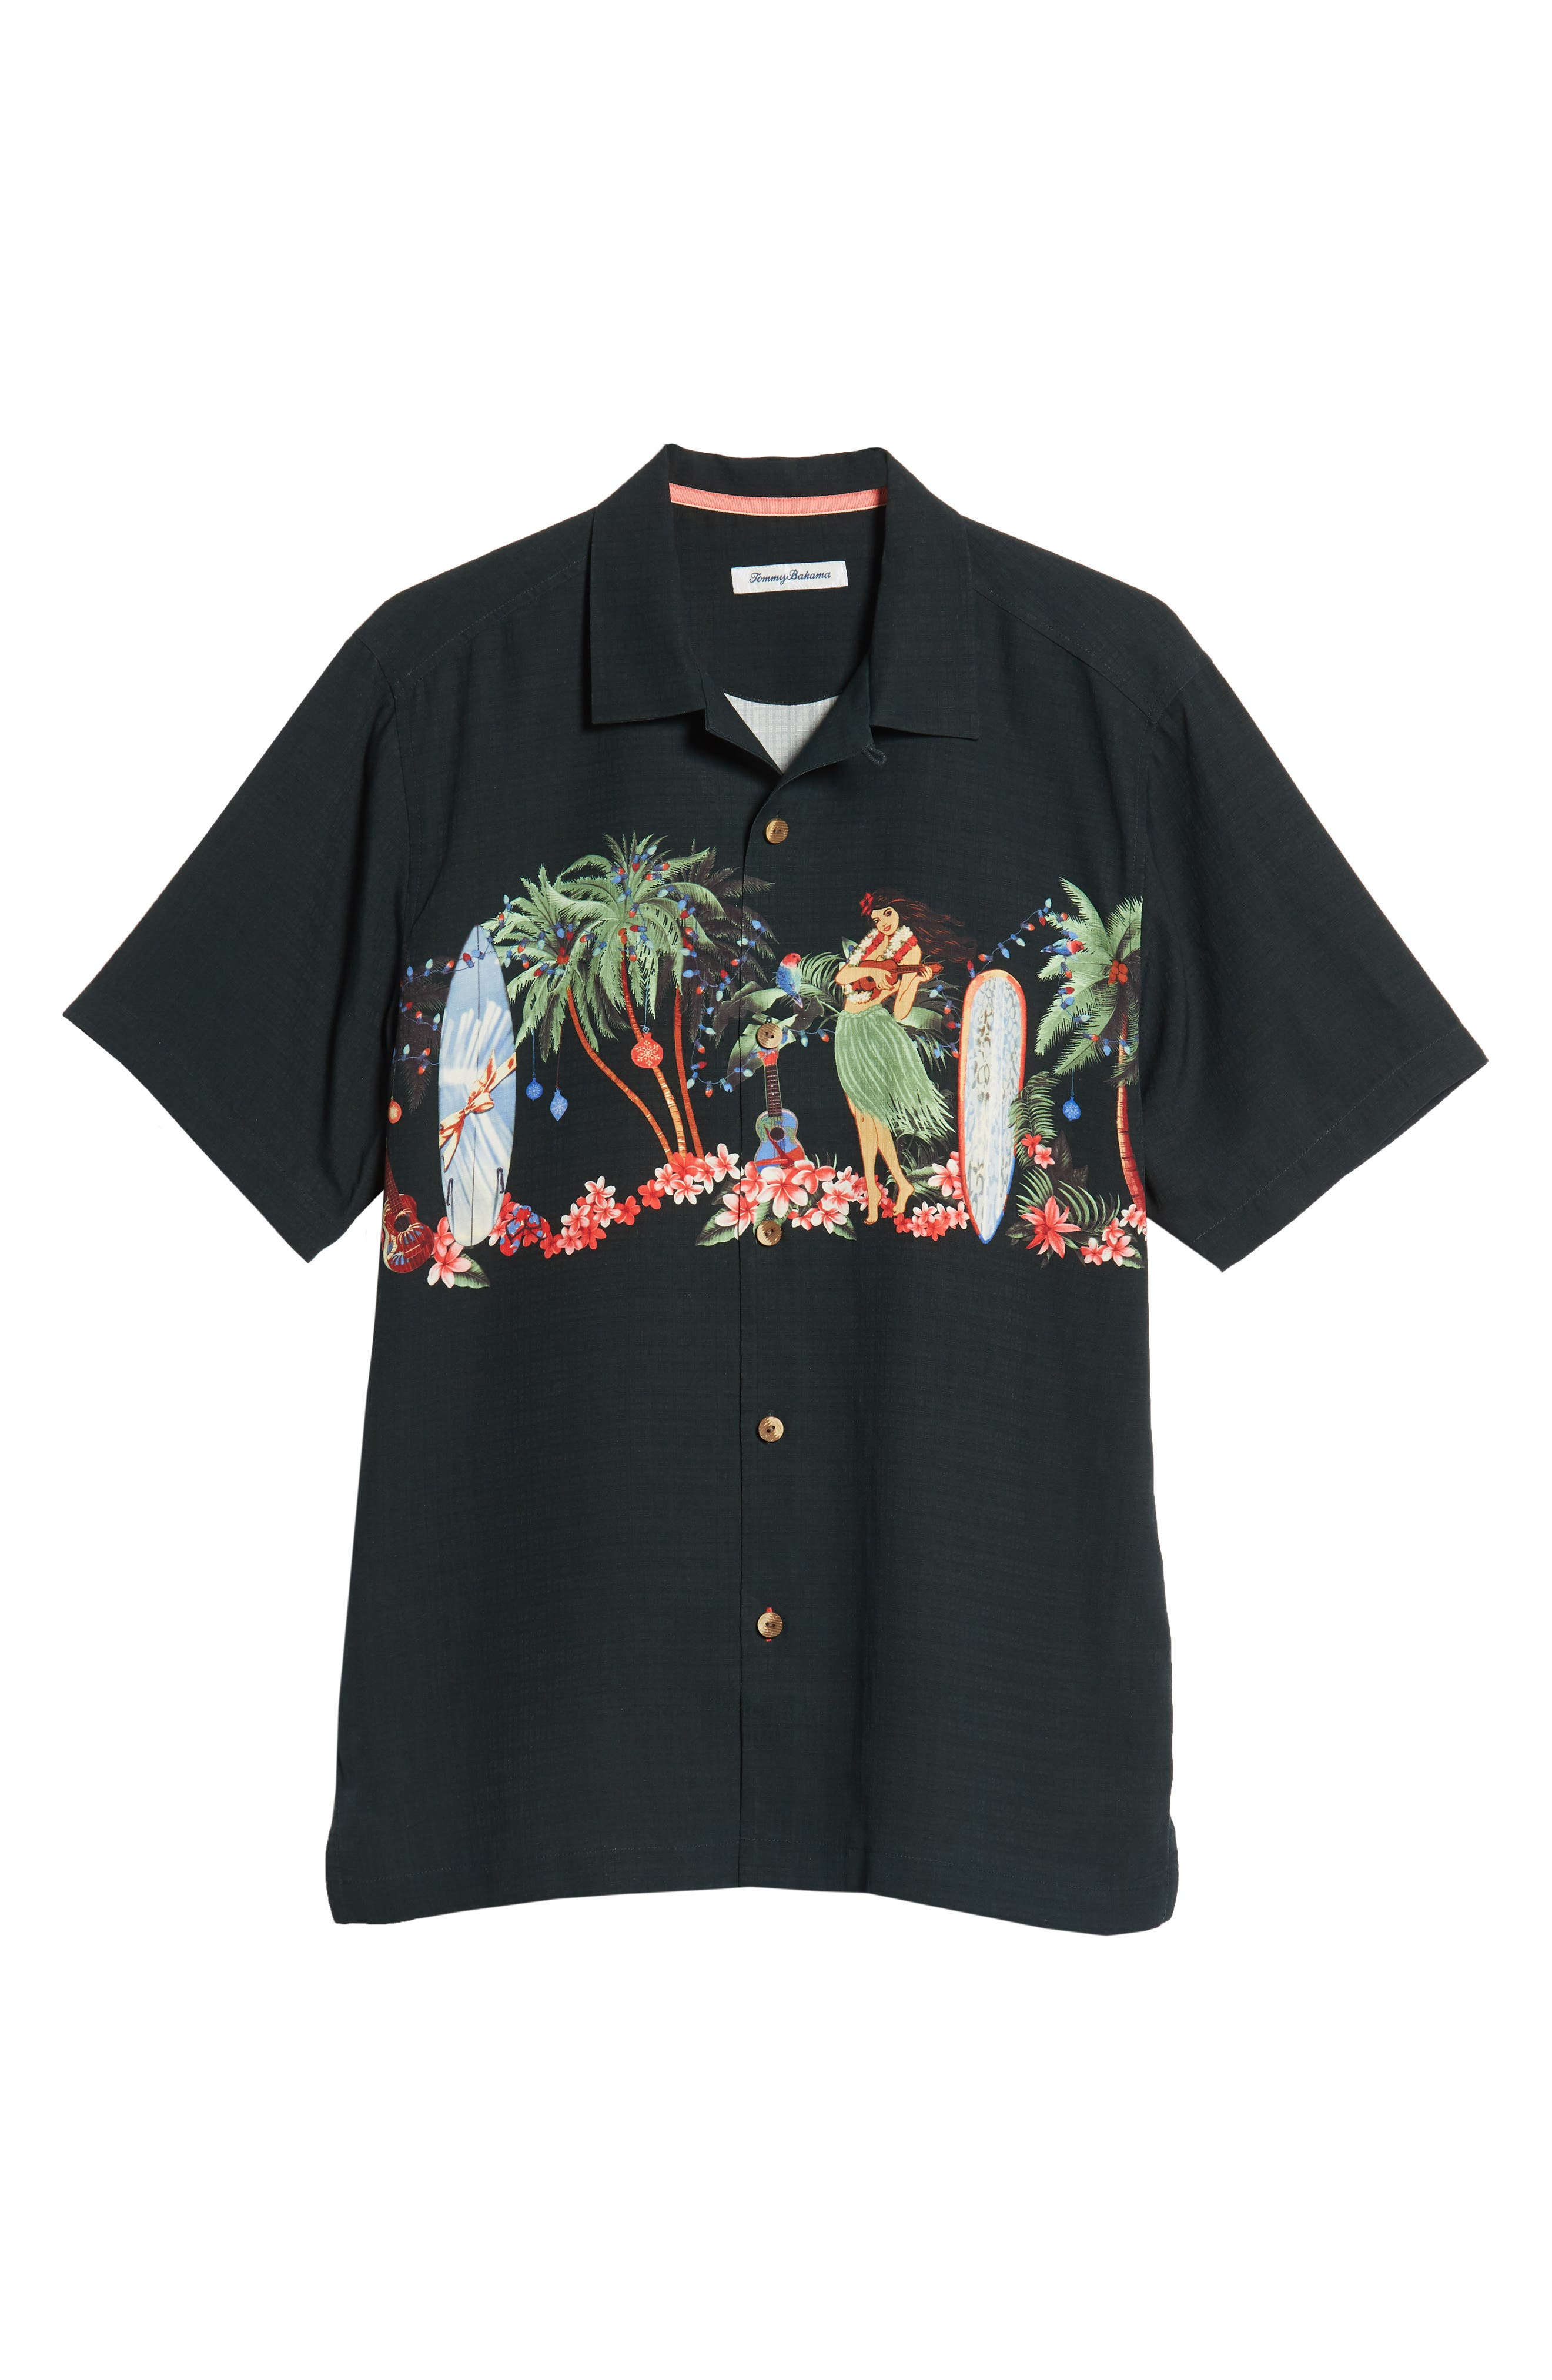 TOMMY BAHAMA, Mele Kalikimaka Silk Camp Shirt, Alternate thumbnail 5, color, 001